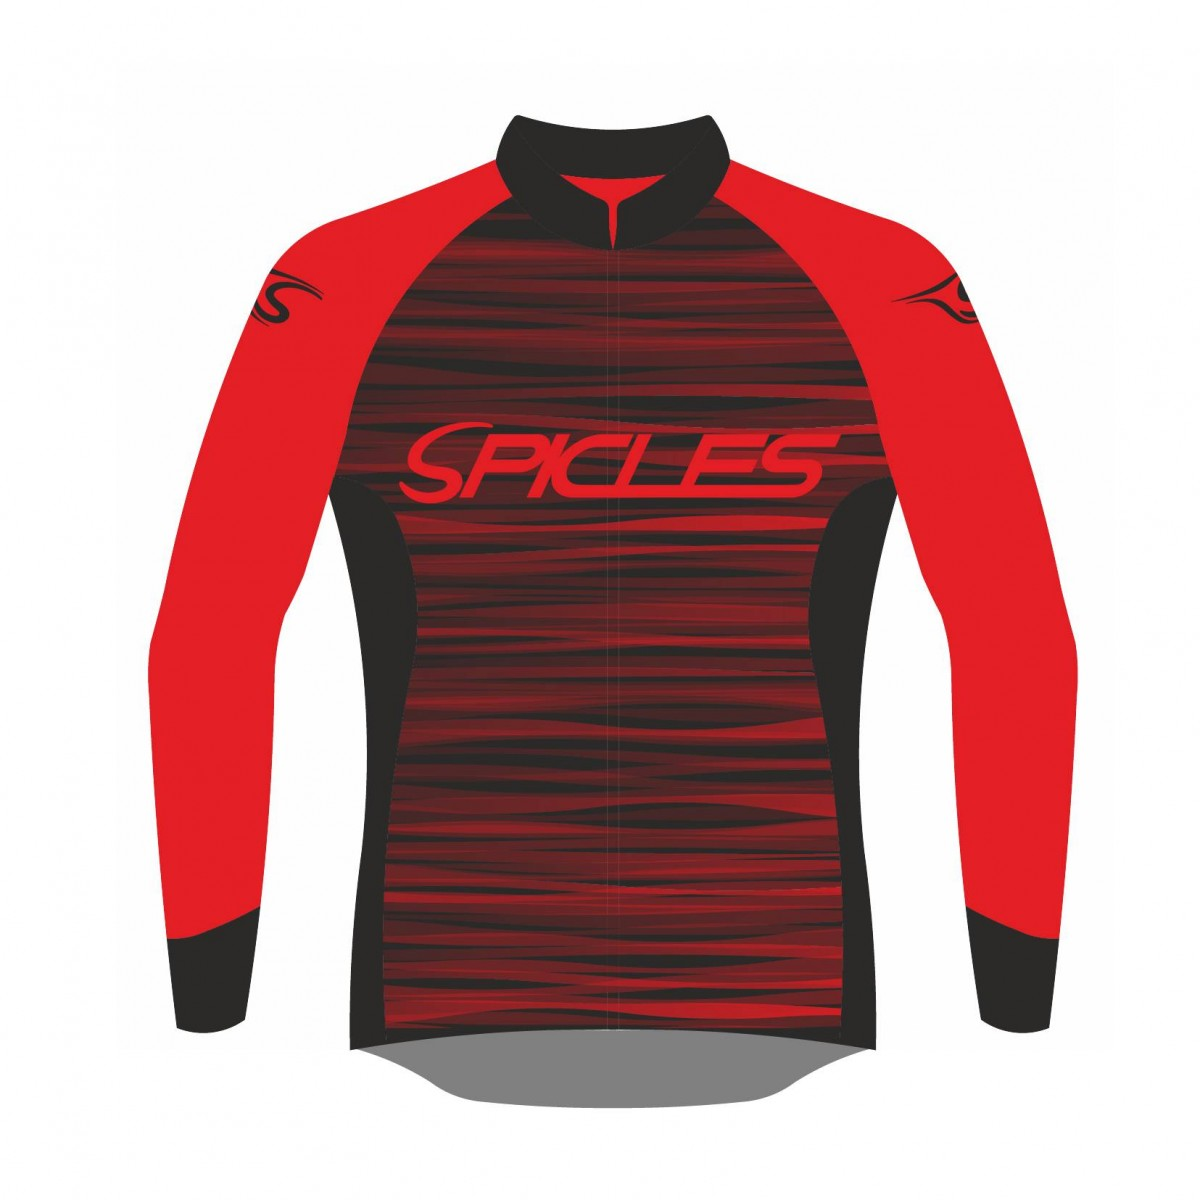 Maillot Largo Spicles Mujer